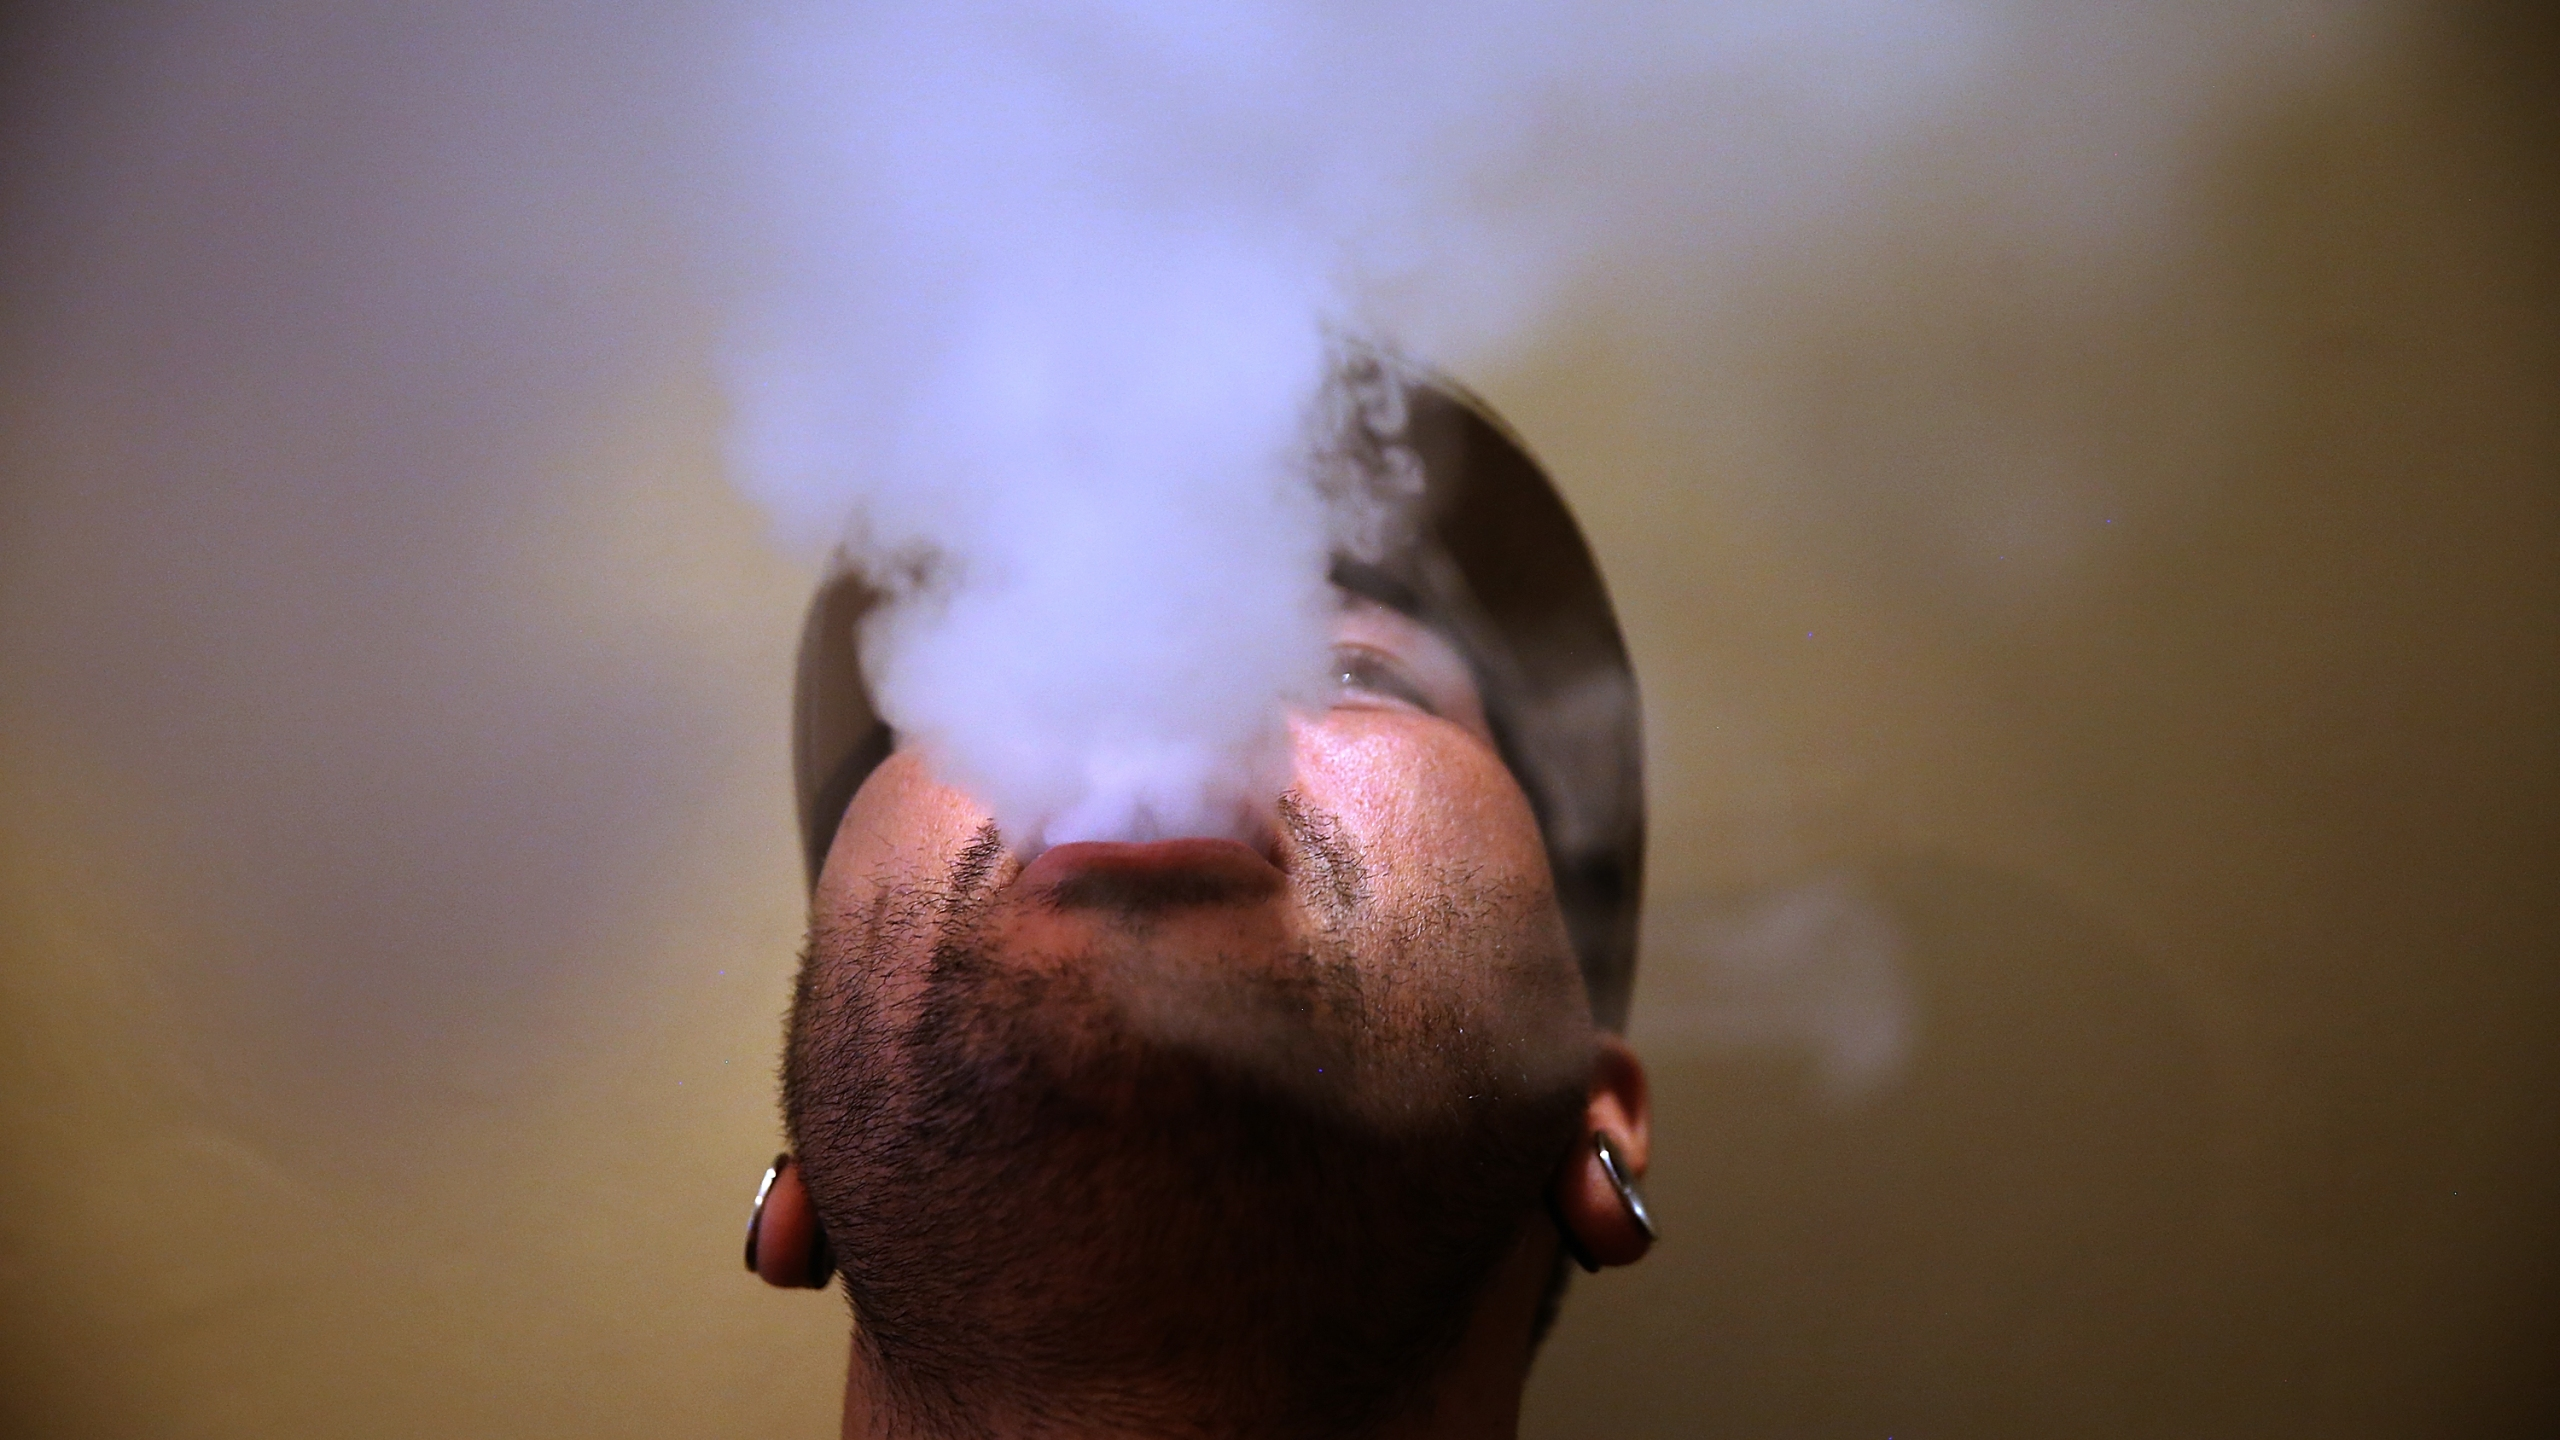 A person blows vapor from an e-cigarette on May 5, 2016 in San Francisco. (Credit: Justin Sullivan/Getty Images)